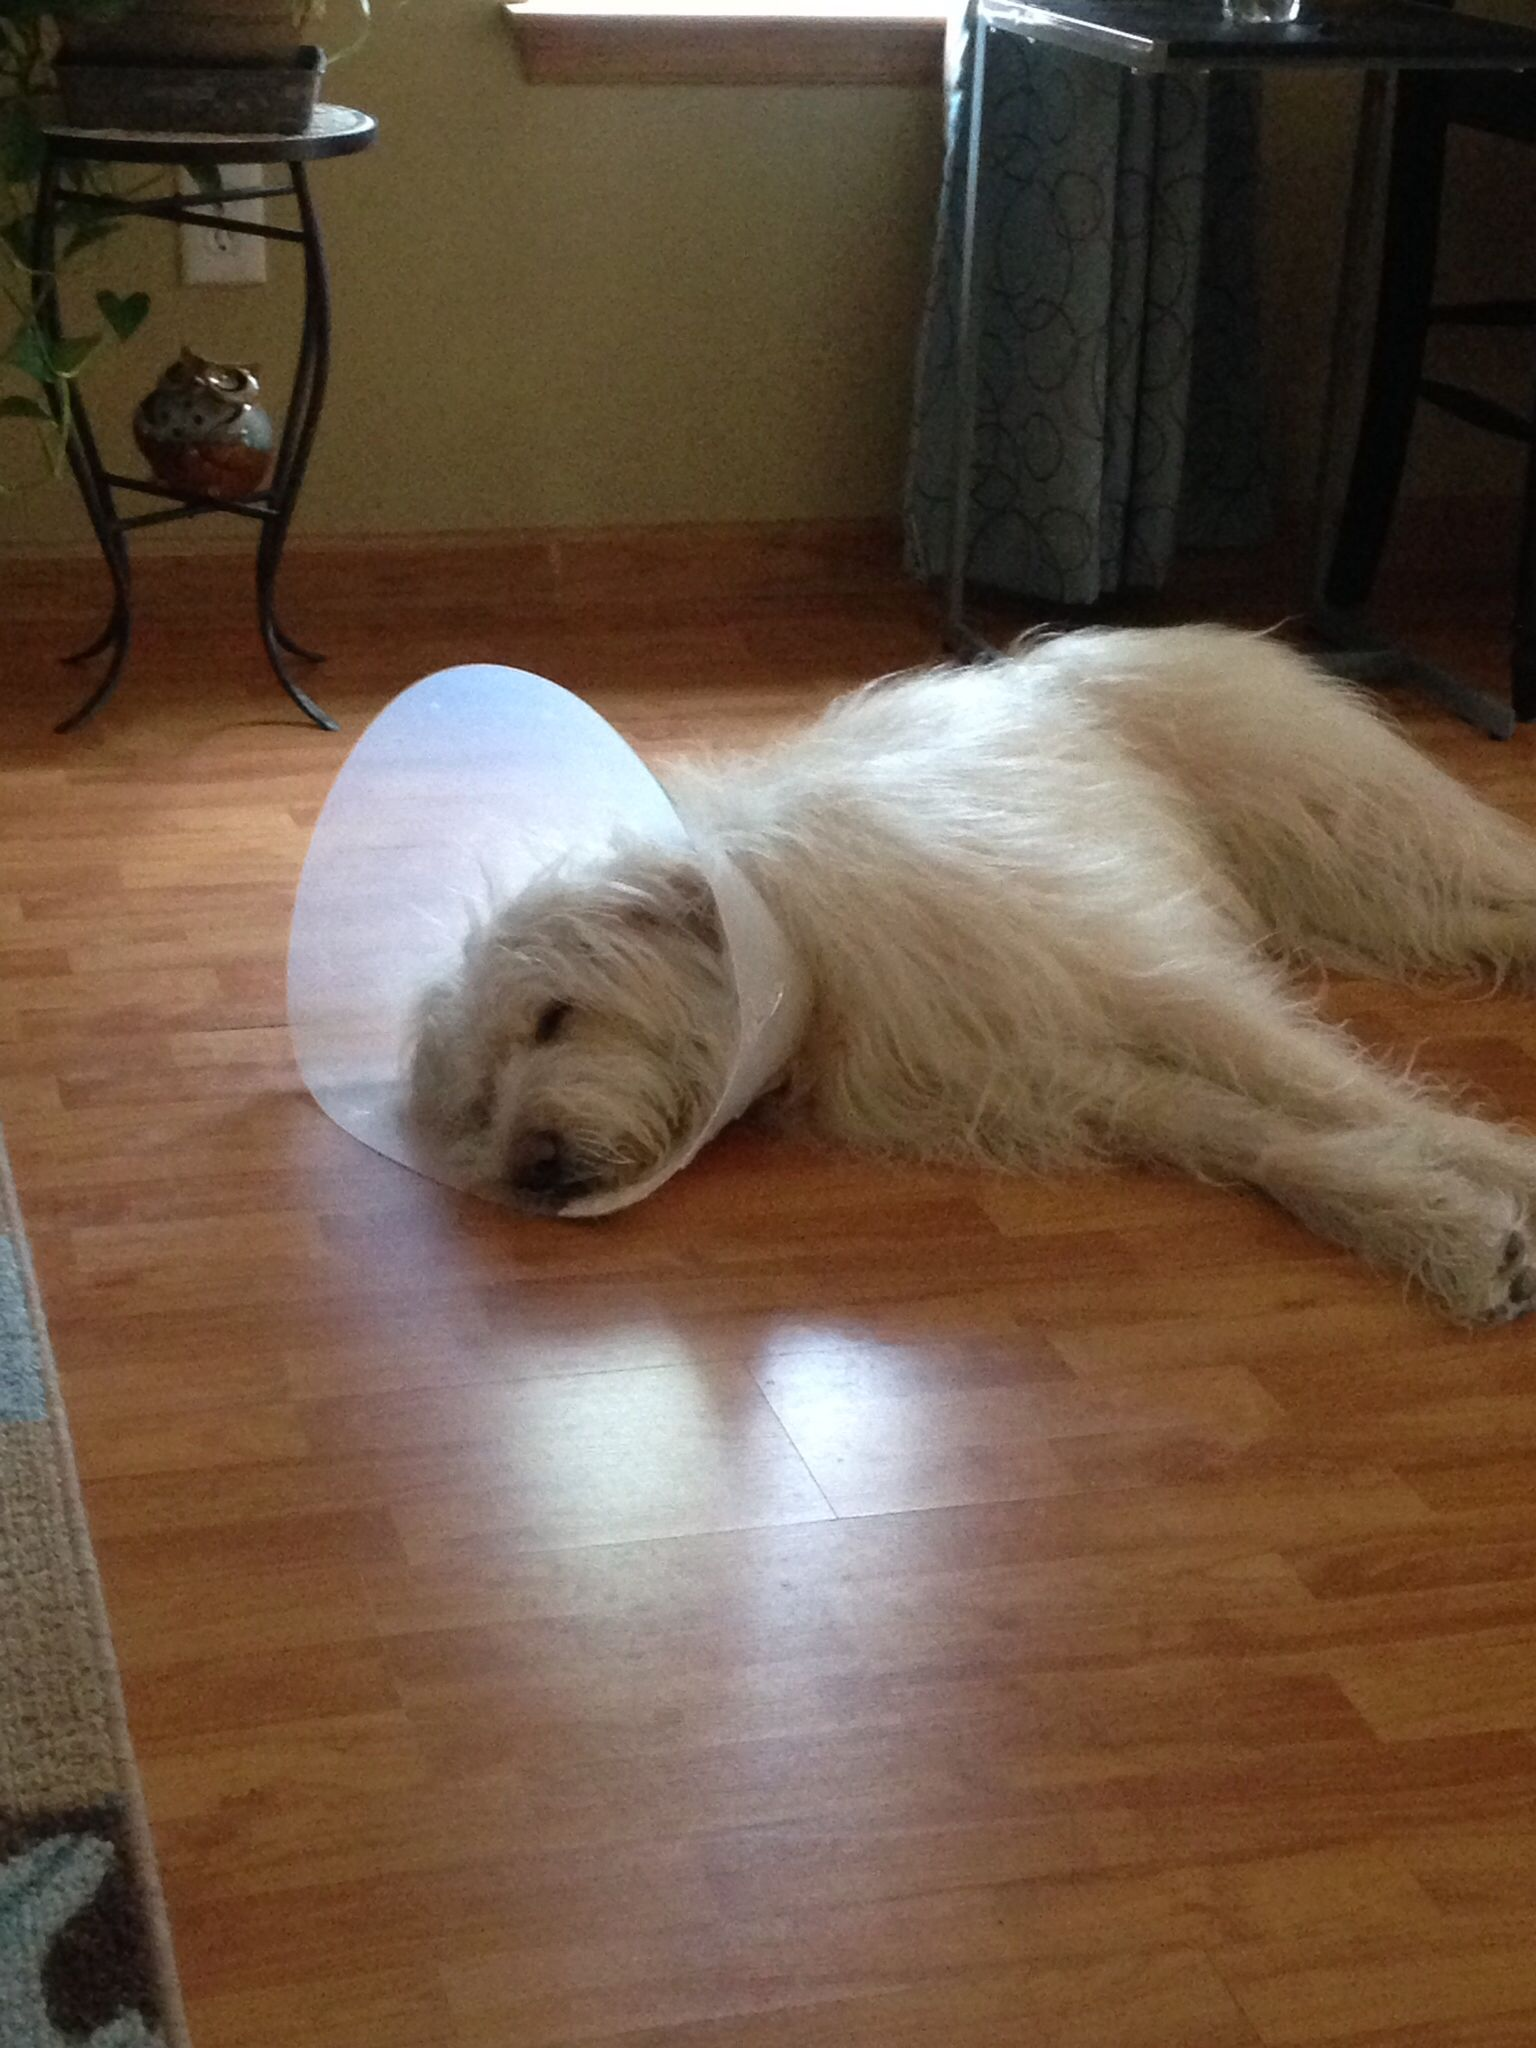 Poor cone head Brisco, recuperating after cyst removal